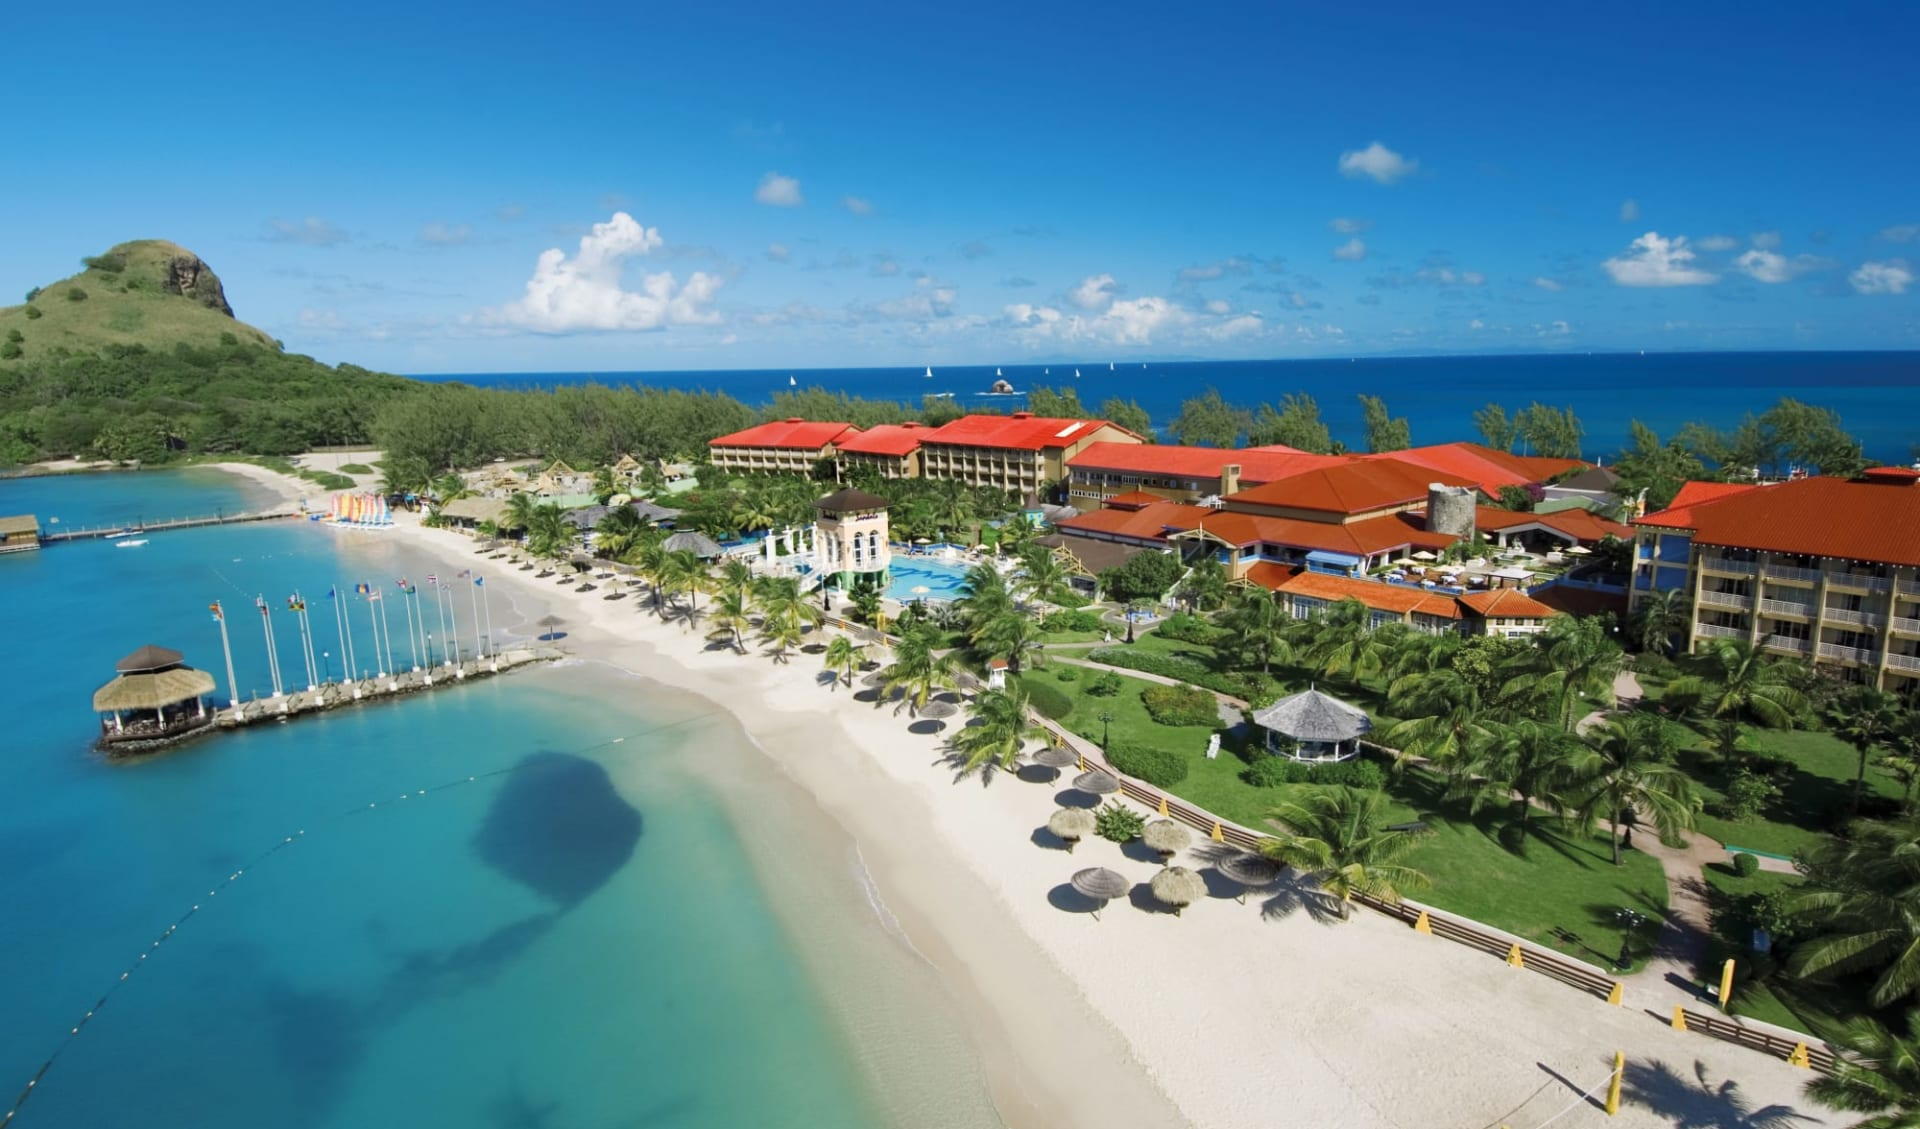 Sandals Grande St. Lucian Spa & Beach Resort in Gros Islet:  St. Lucia_Sandals Grande_Beach